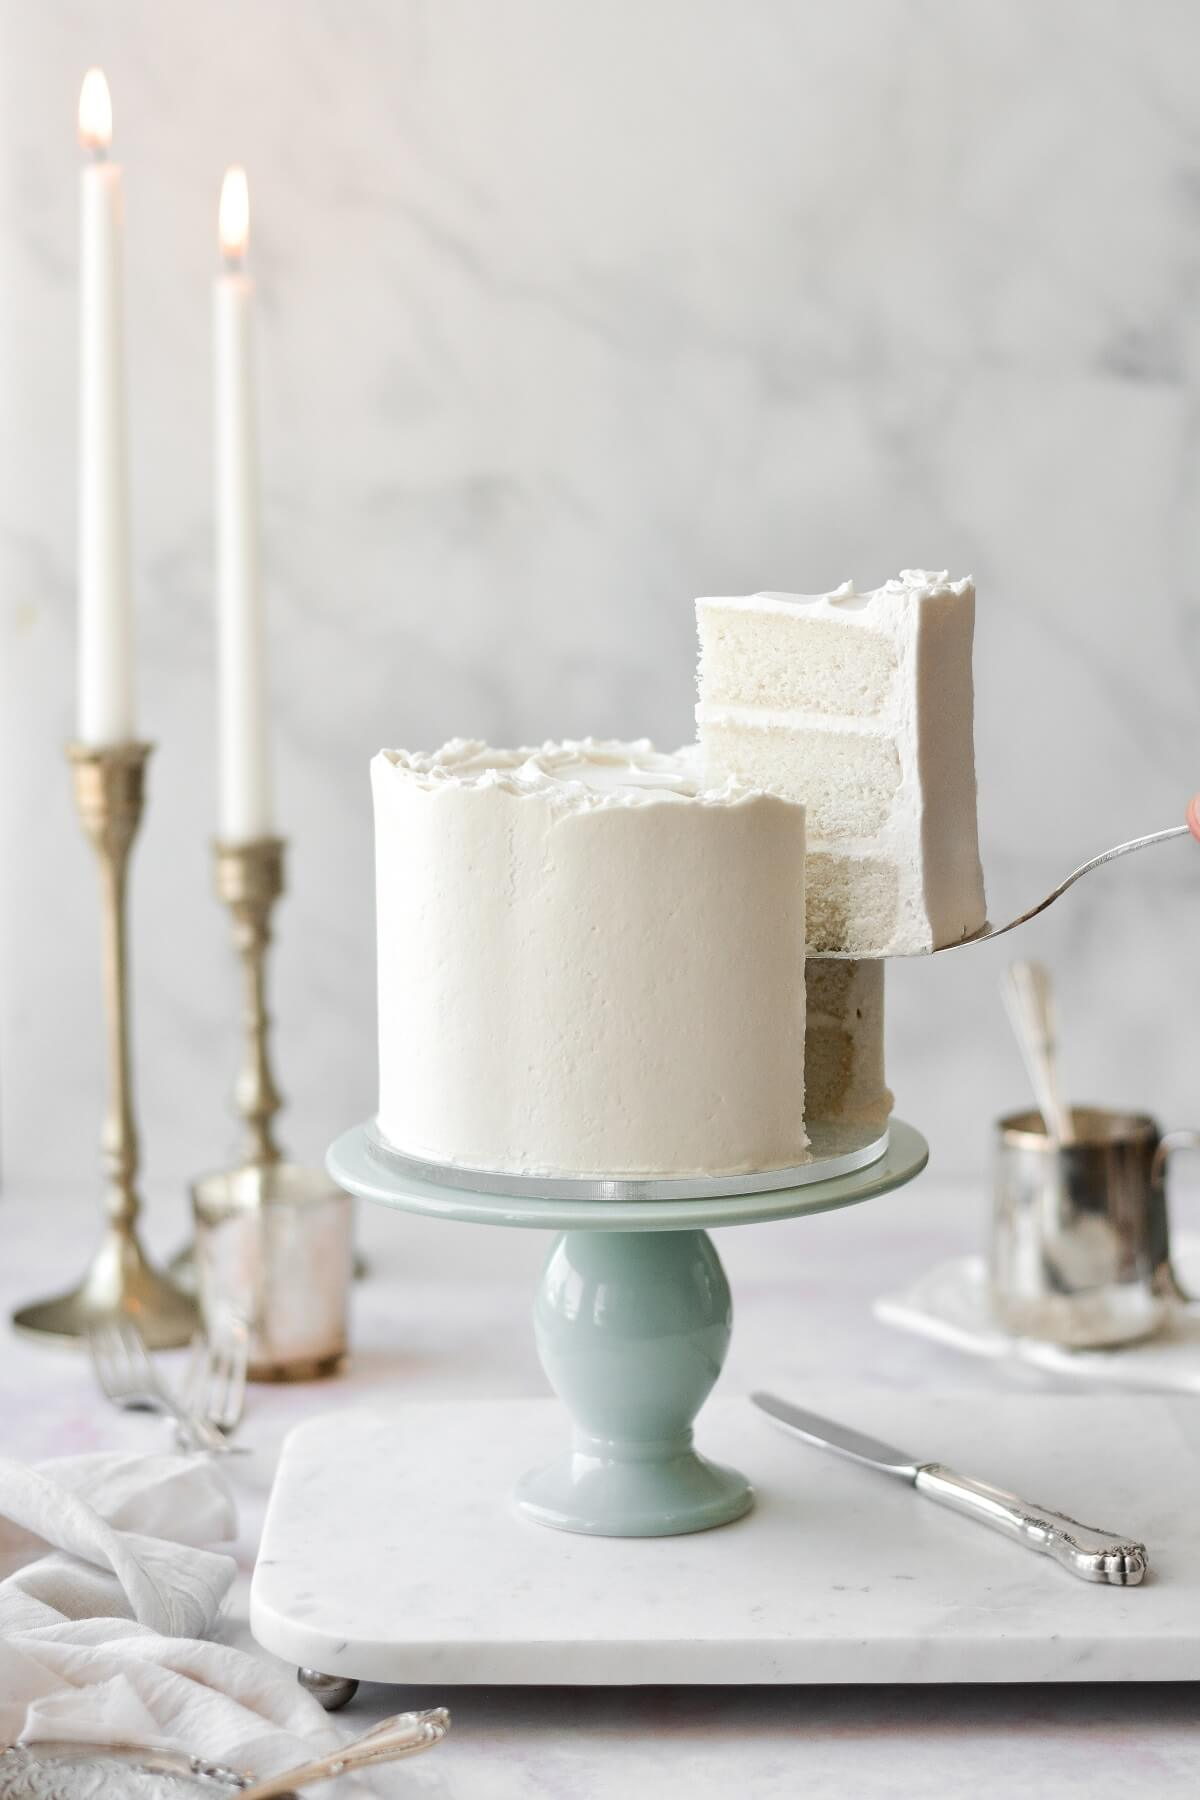 White velvet cake, on a sage green cake stand, with a piece being lifted out by a silver cake server.